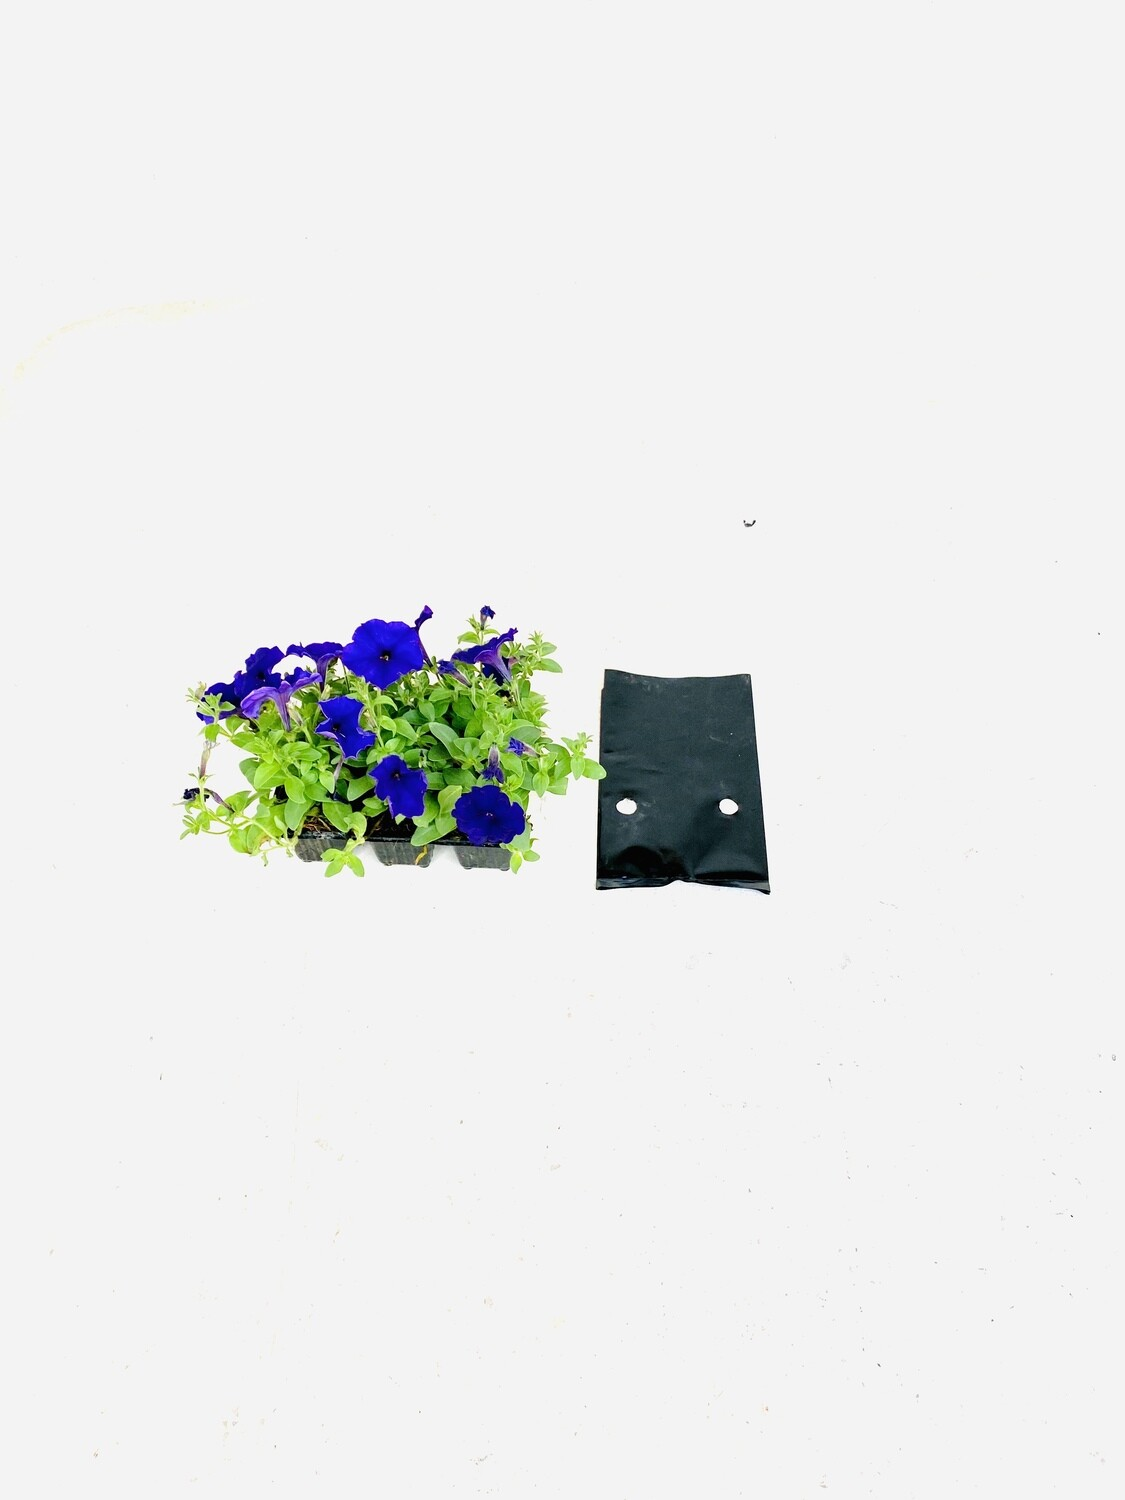 2.5 Liter Plastic Planting Growing Bags. 100 Micron R37 for 25 bags.  Diameter 143mm x Height 115mm Sold in packs of 25